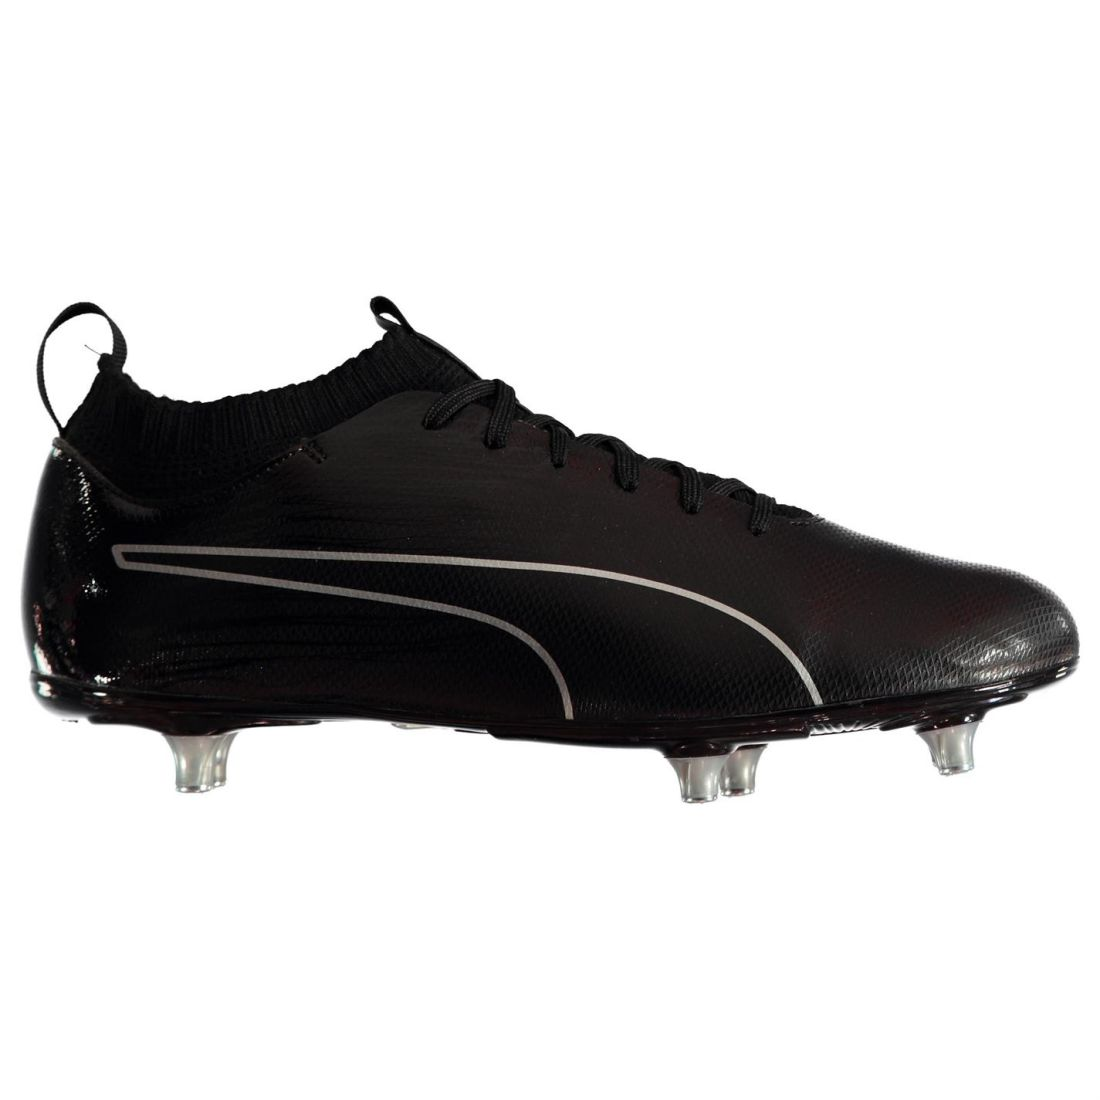 Details about Puma Mens EvoKnit SG Football Boots Soft Ground Lace Up Studs  Knit Textured 268a4bc57